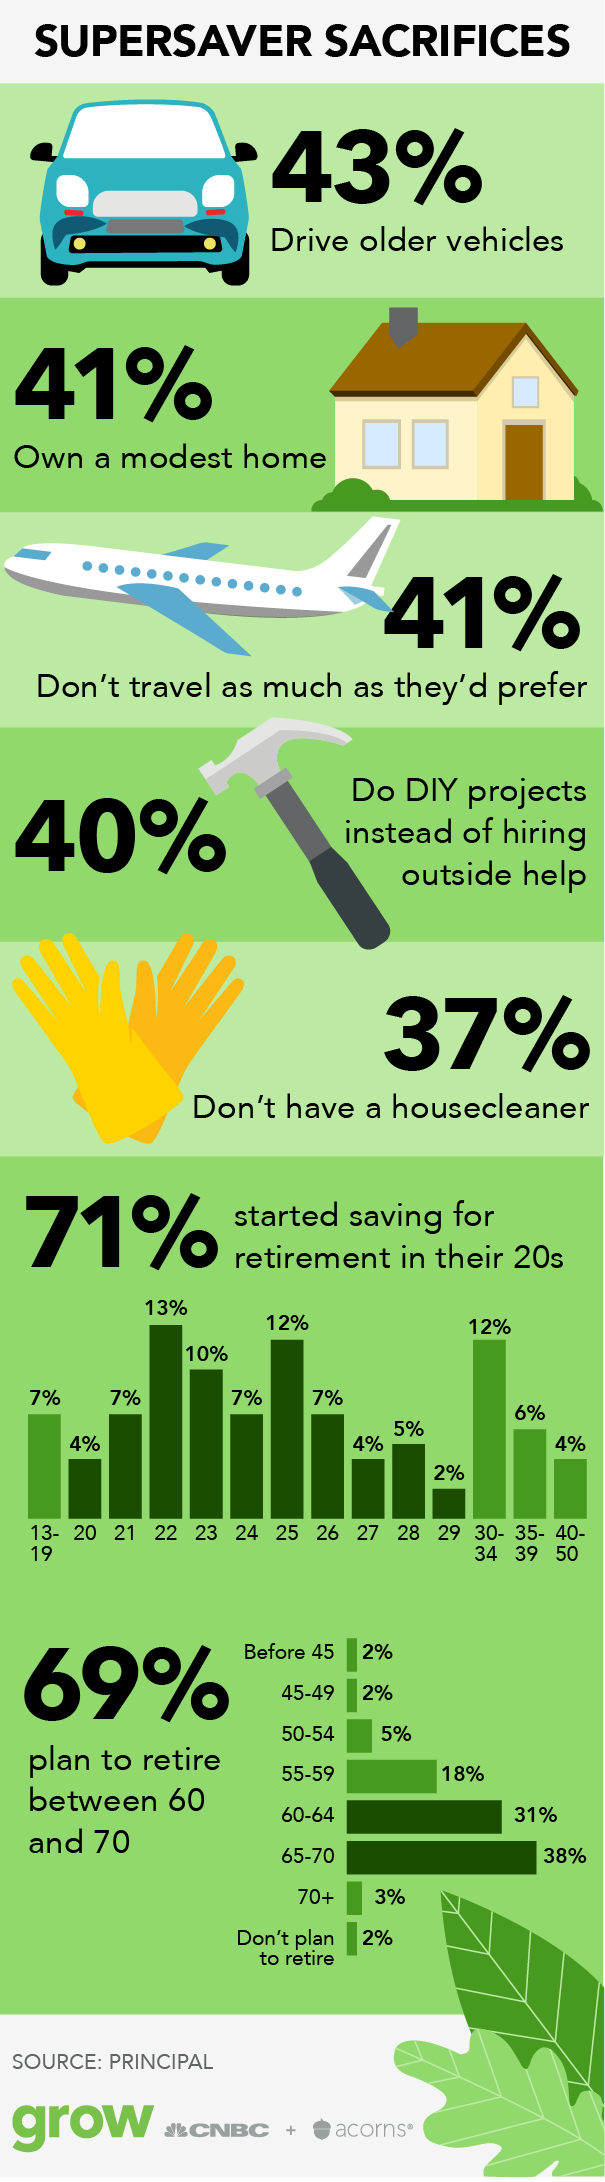 This is a graphic showing the sacrifices super savers make, including driving older vehicles and owning modest homes.